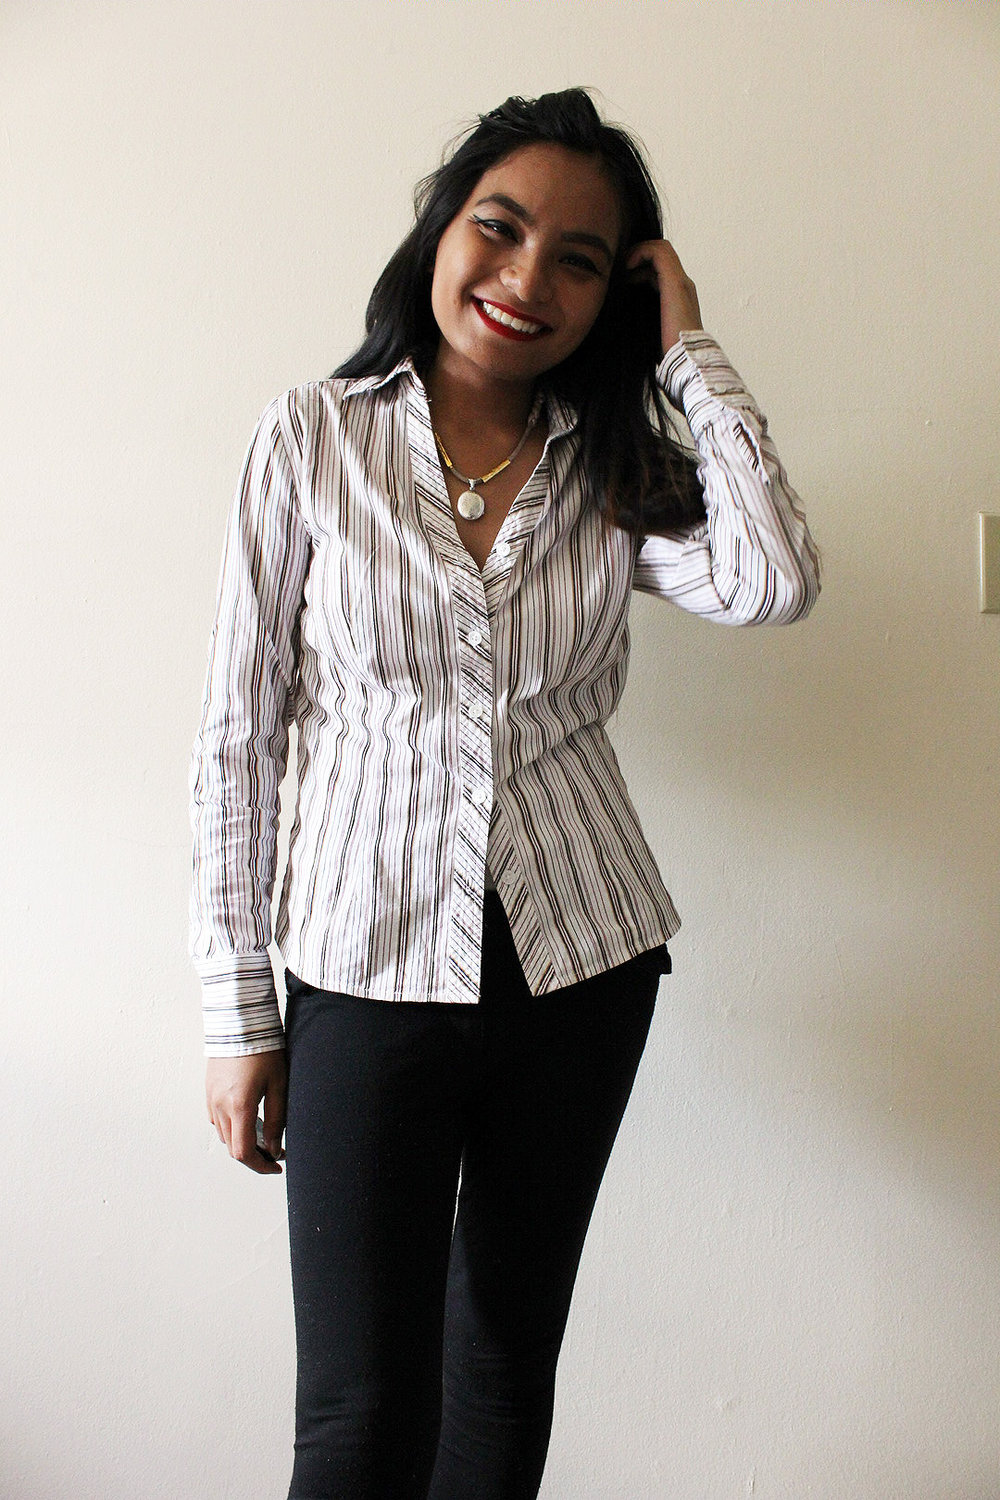 Unique-Shoulders-Blazers-Button-Down-Shirt-Work-Appropriate-Office-Wear-Style-Blogger-Fashionista-LINDATENCHITRAN-11-1616x1080.jpg